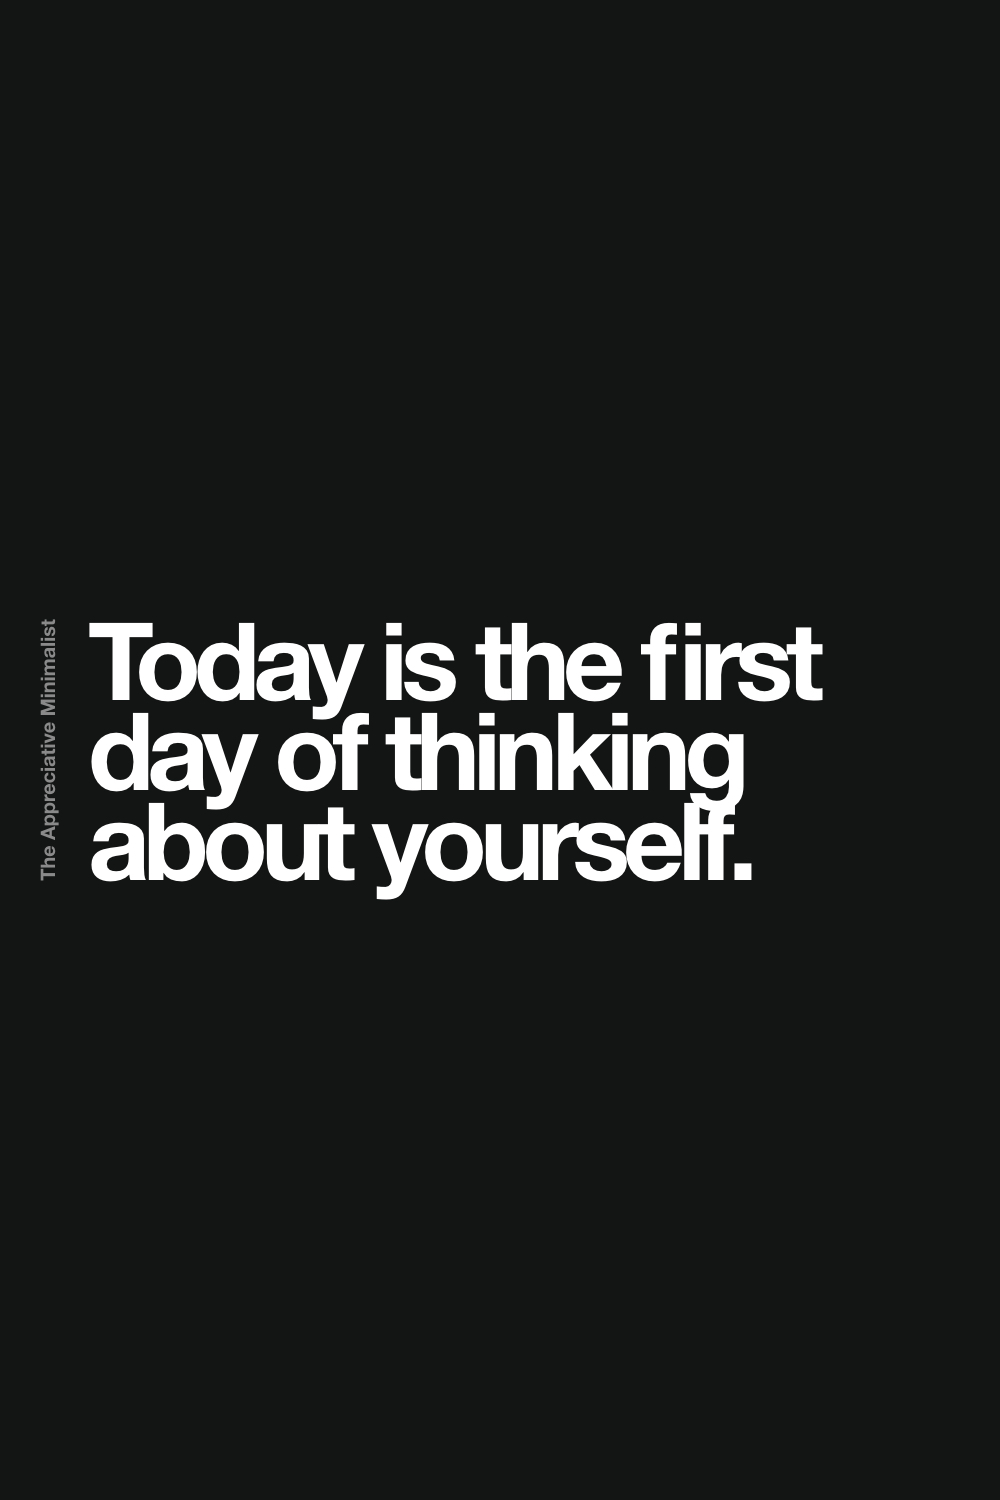 Today is the first day of thinking about yourself.